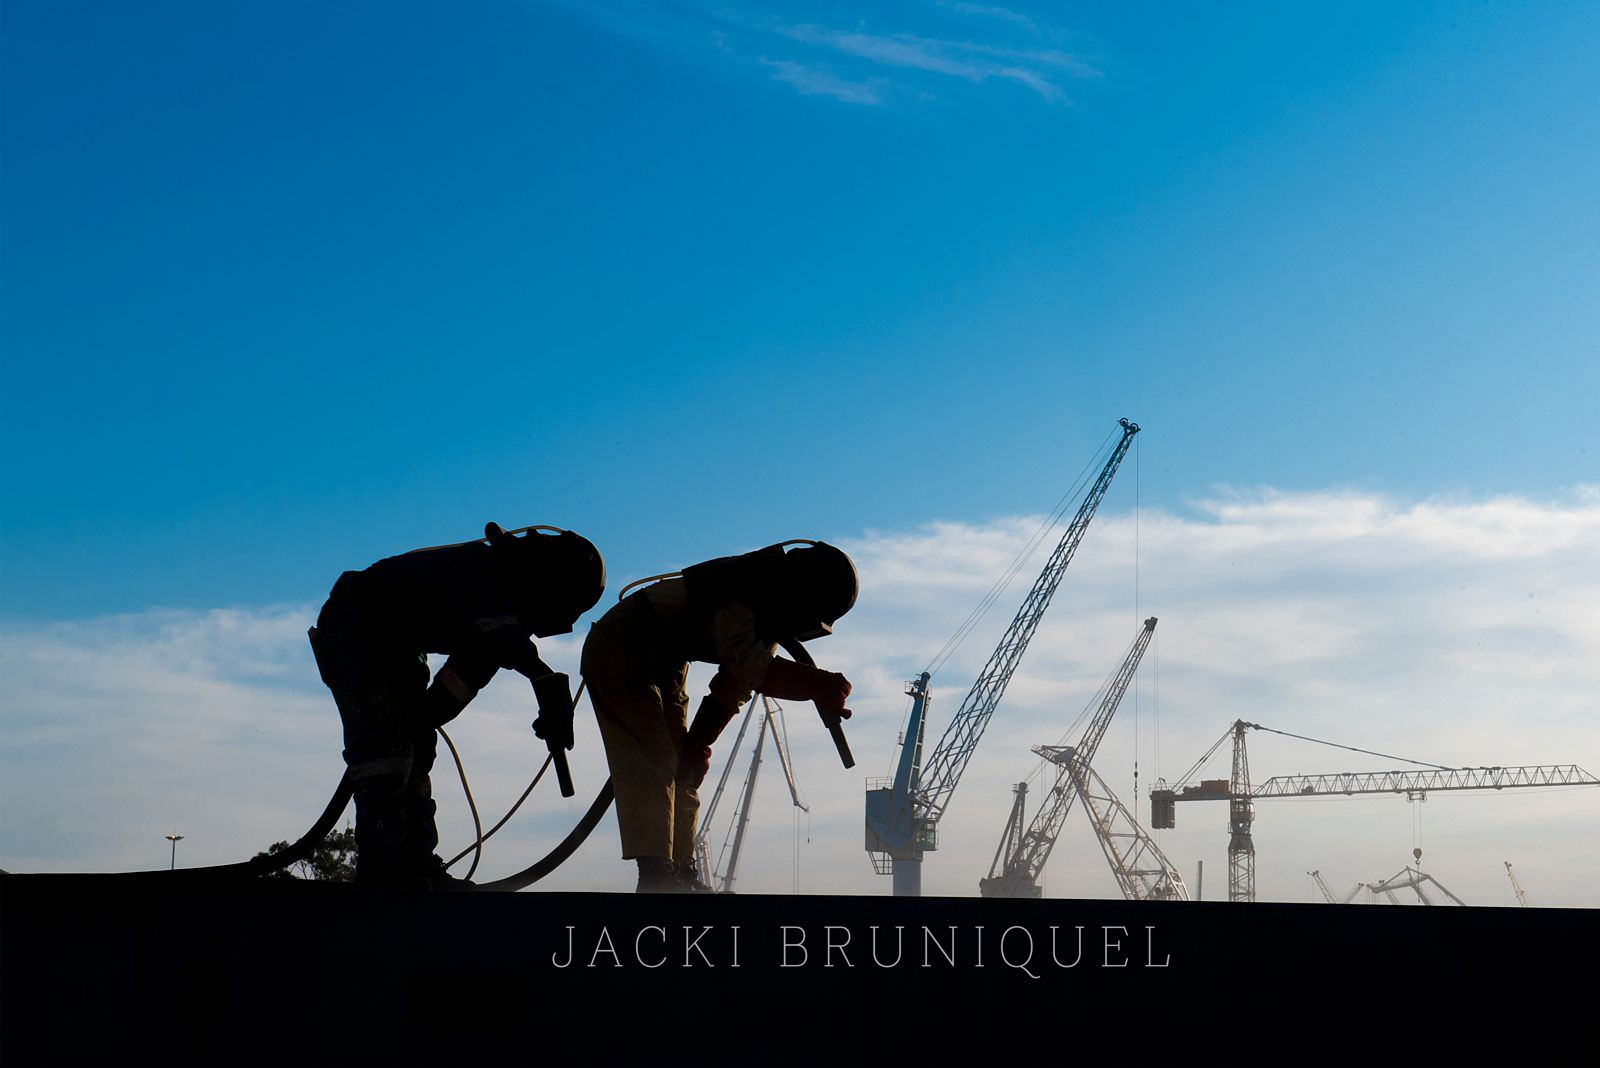 Creative branding photo library photographed for SA Shipyard, South Africa's largest ship building company. Photographed by top South African branding and commercial photographer- Jacki Bruniquel.